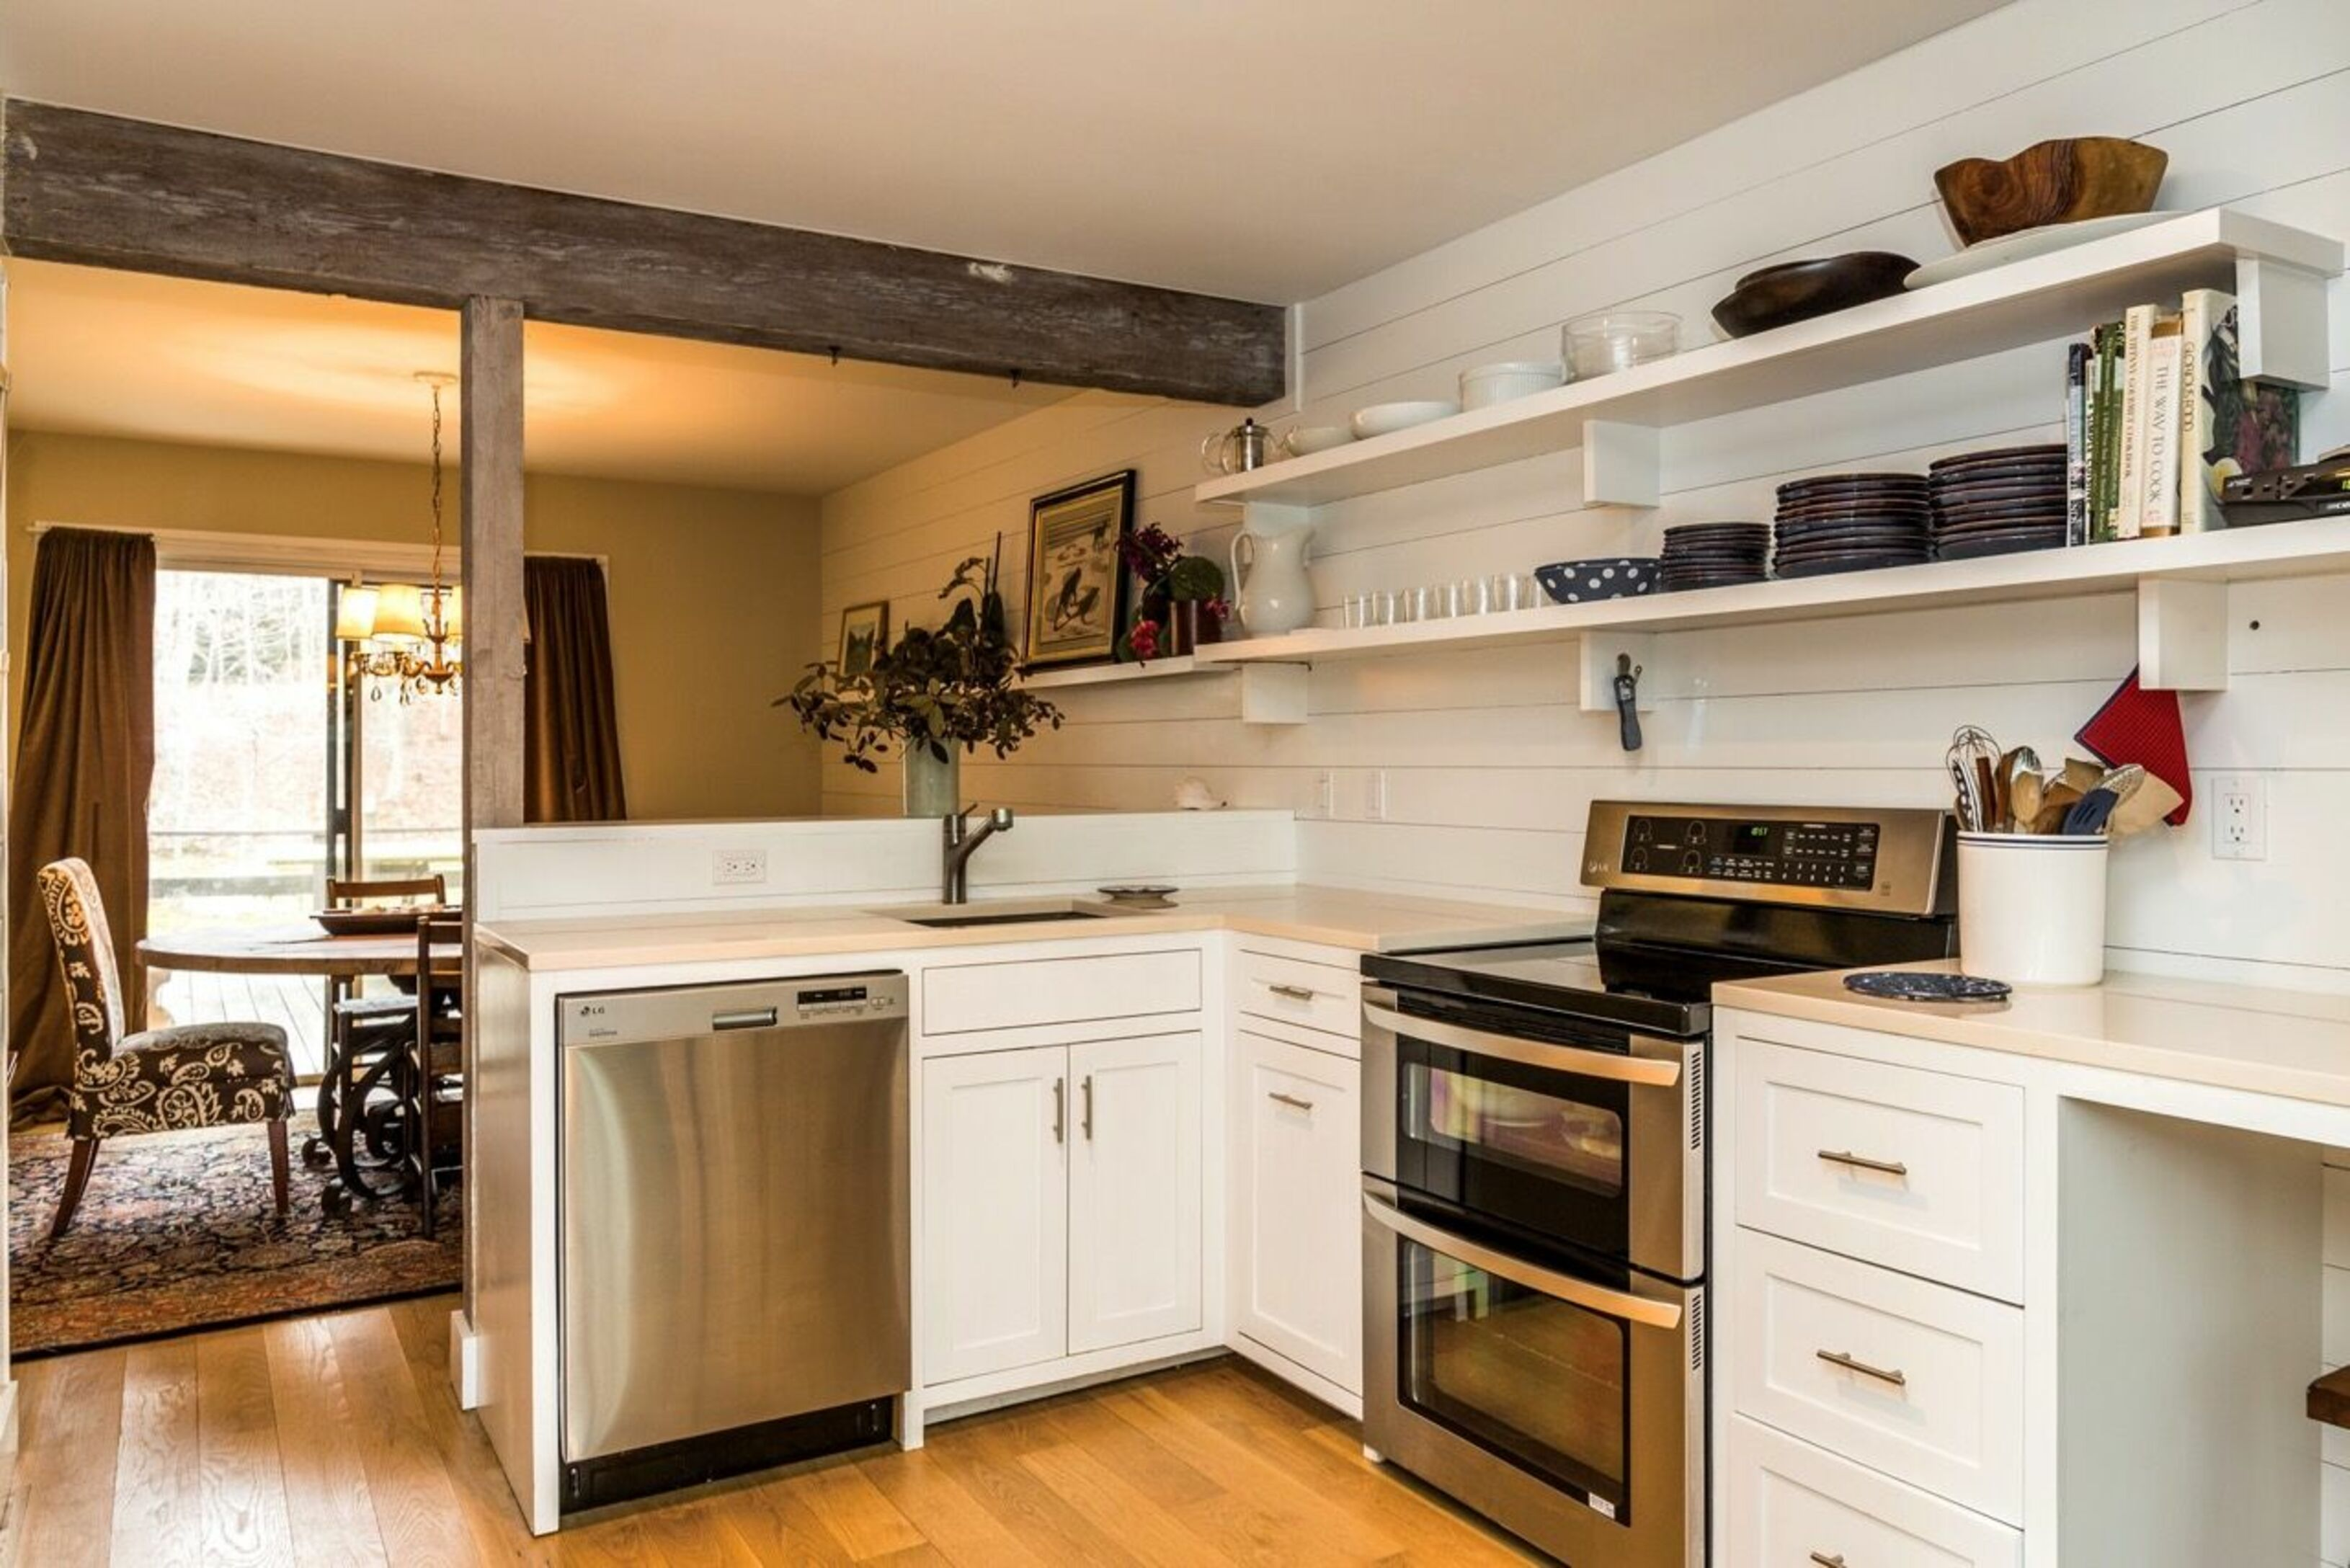 190 Treescape Dr - Cluster 1 - Unit A2 - East Hampton NW, New York